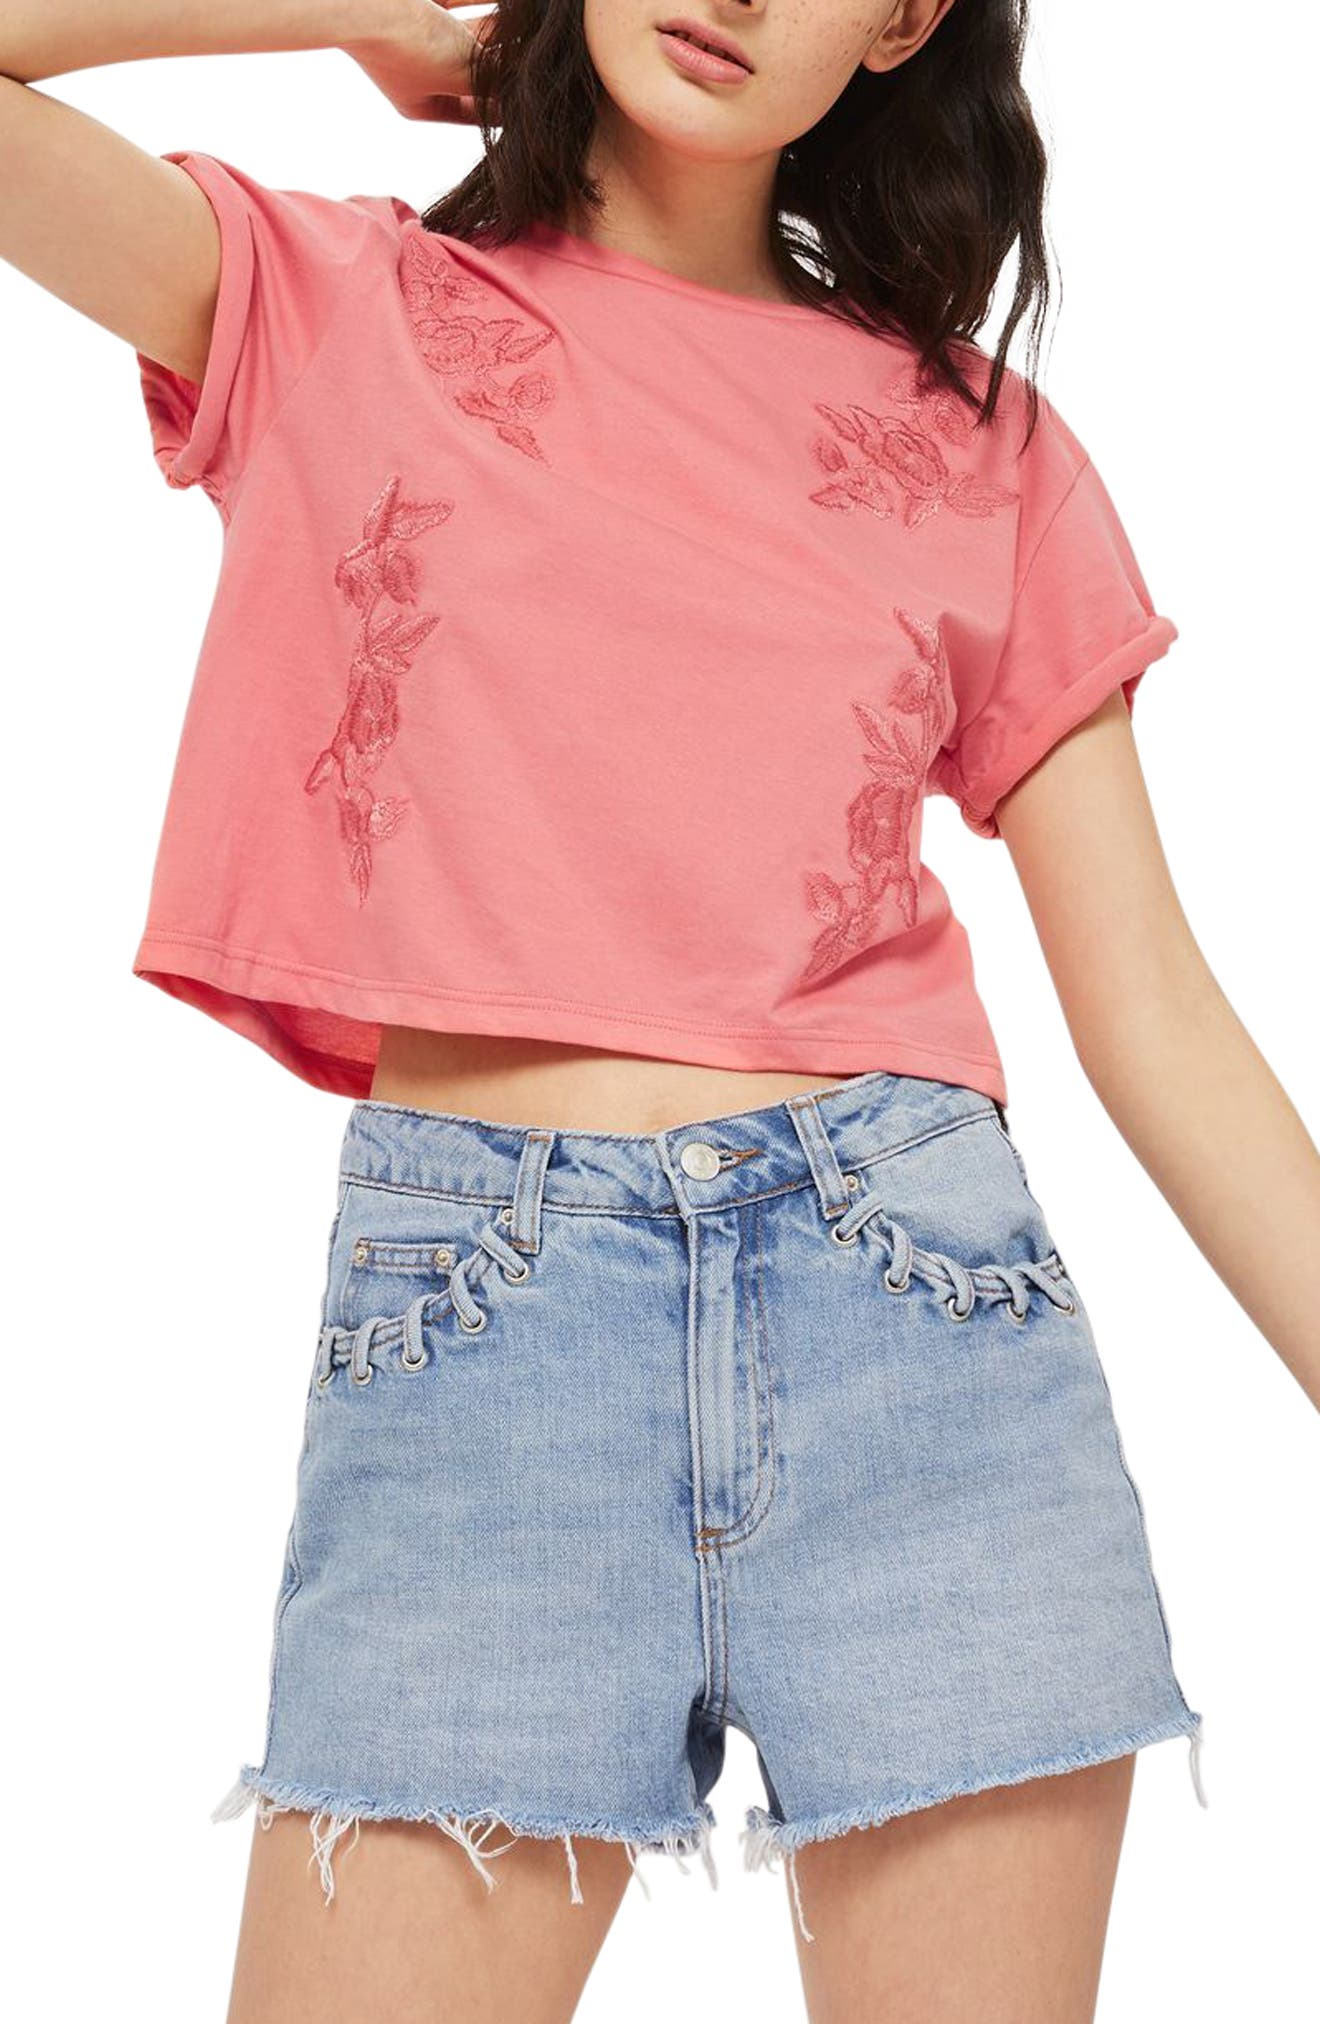 Topshop Embroidered Crop Tee